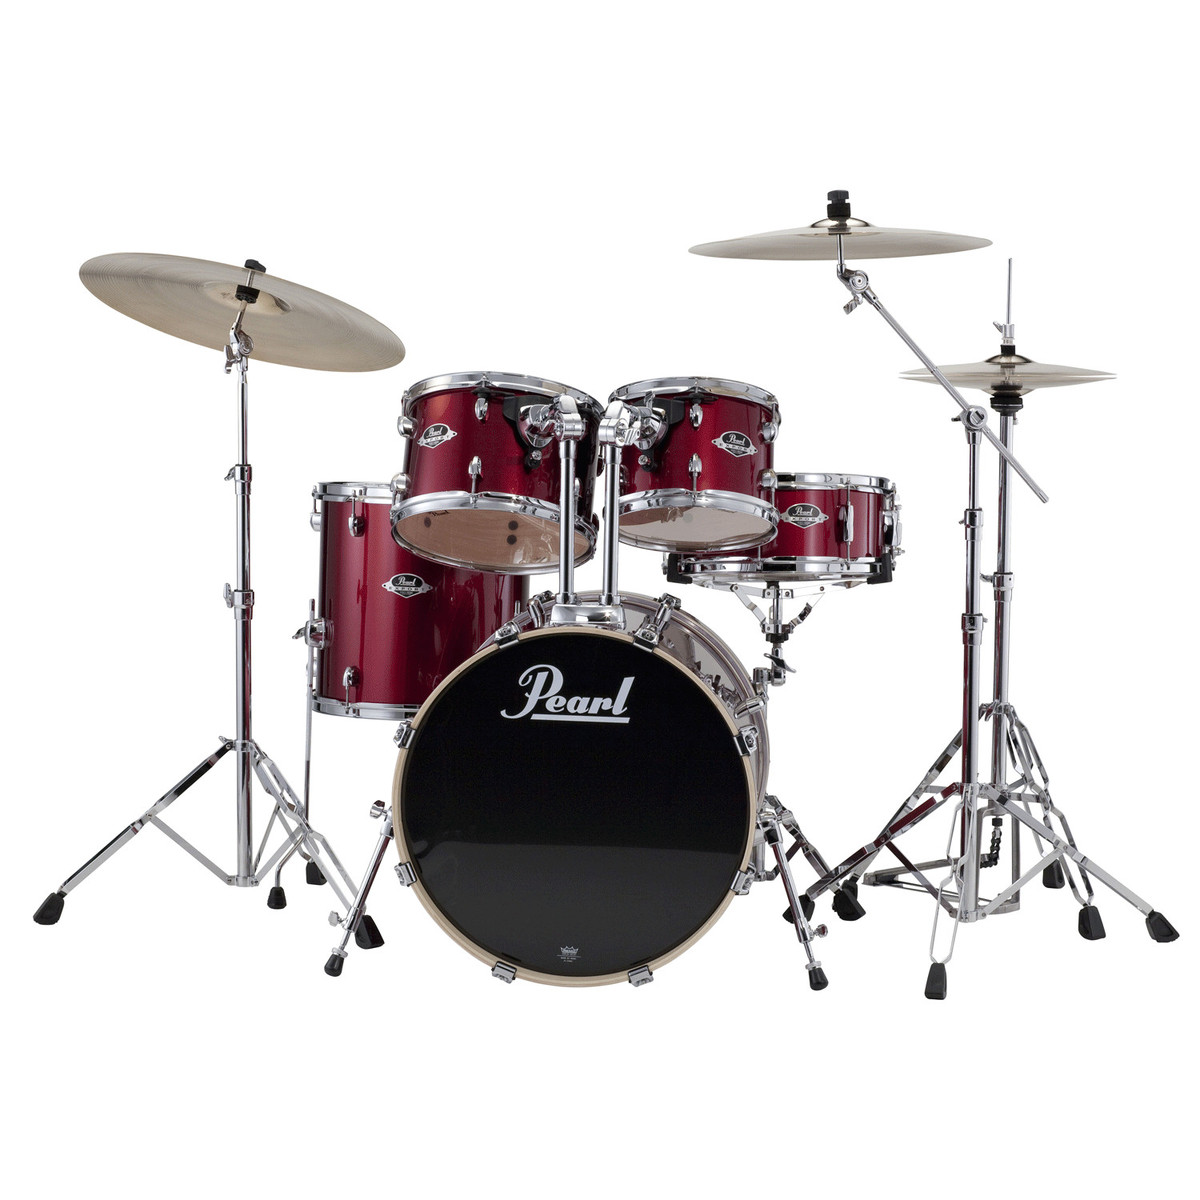 disc pearl export exx 20 39 39 fusion drum kit red wine at. Black Bedroom Furniture Sets. Home Design Ideas